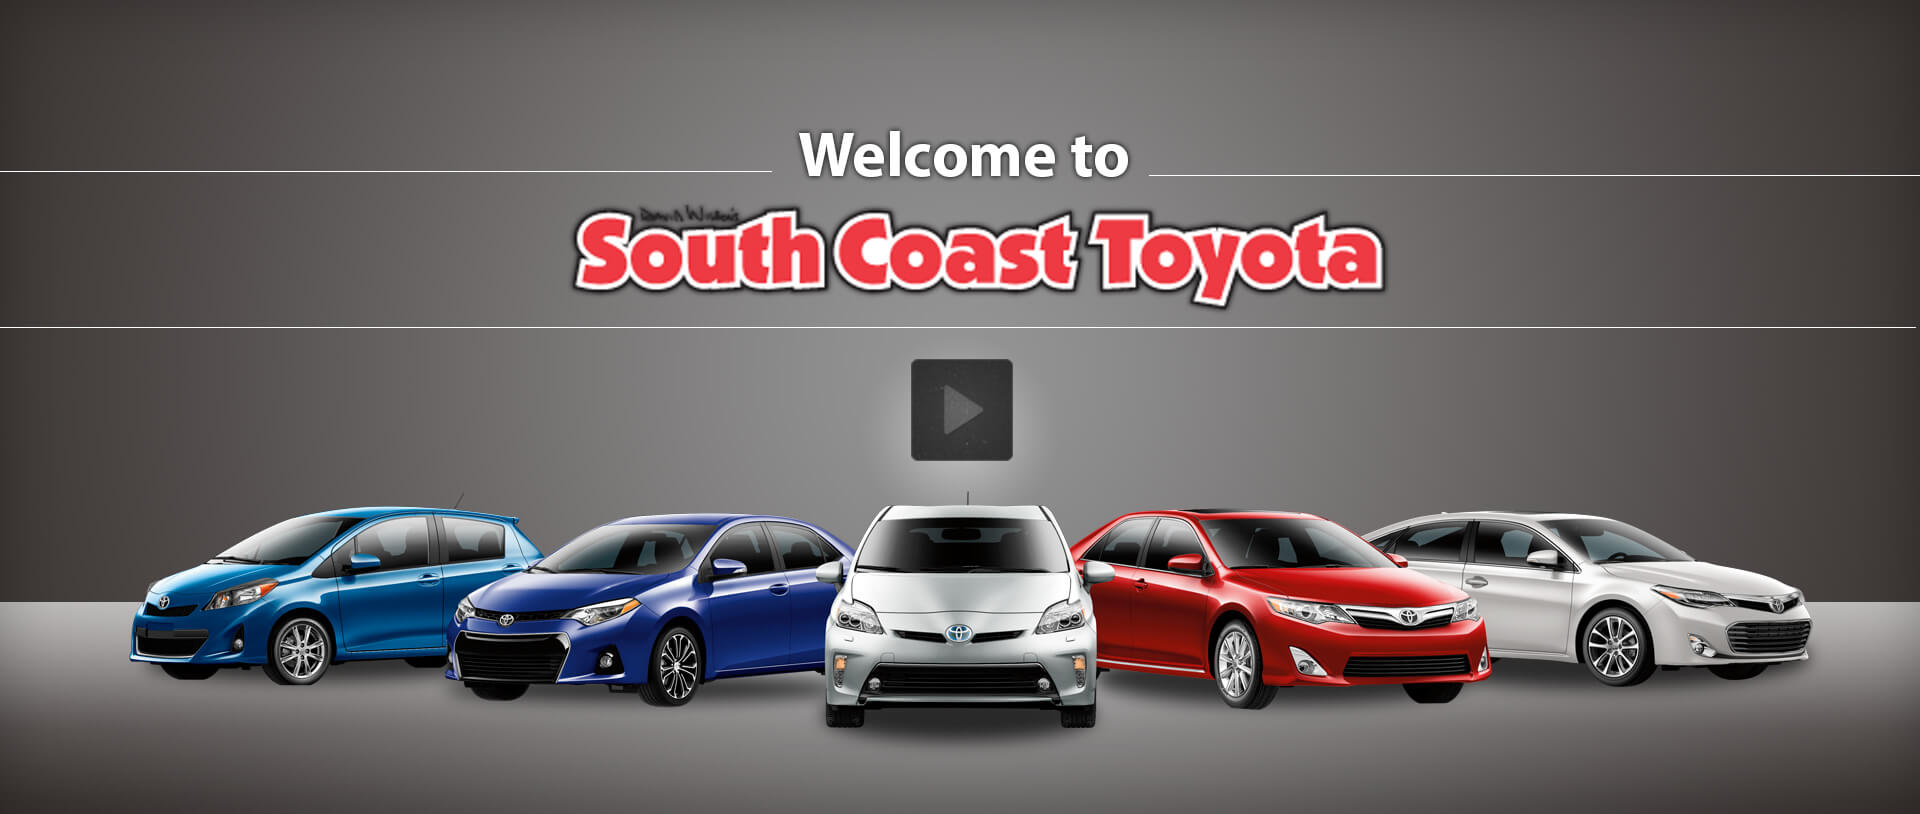 Welcome to South Coast Toyota